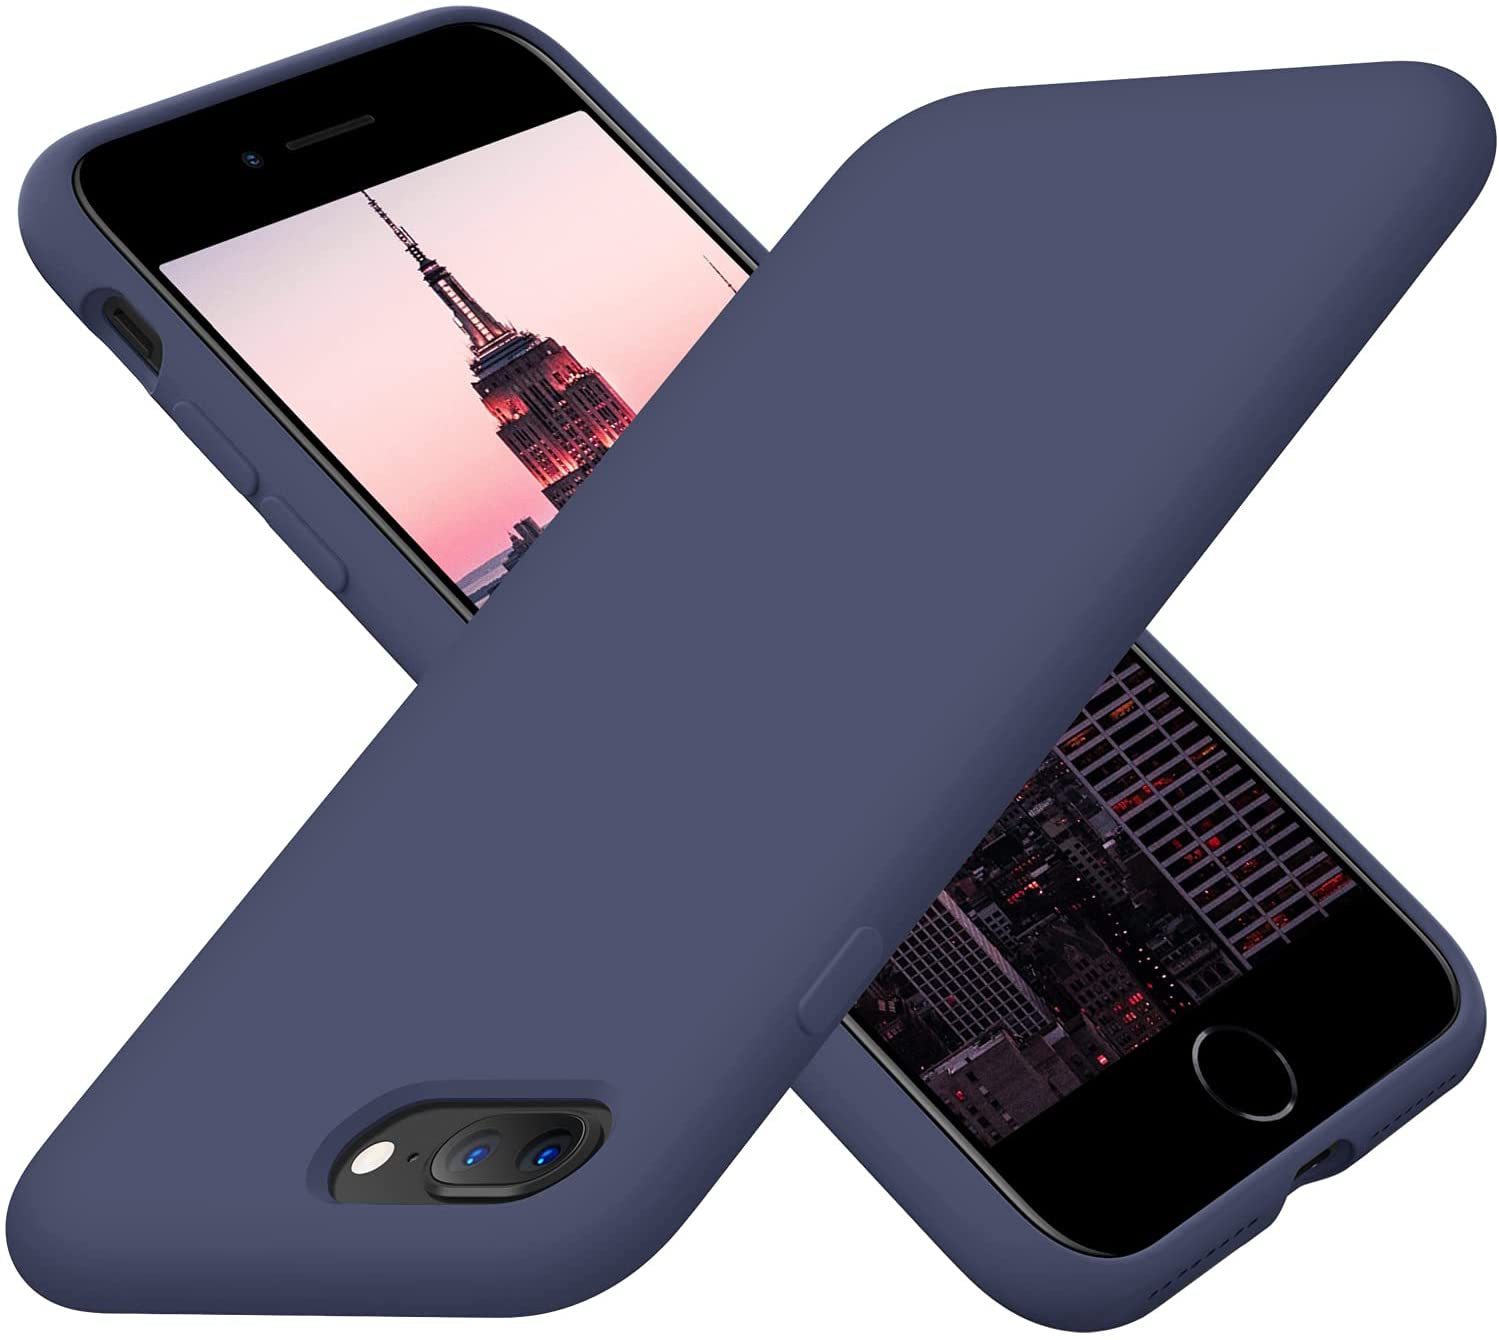 Cordking iPhone 8 Plus Phone Case, iPhone 7 Plus Case, Silicone Ultra Slim Shockproof Phone Cover with [Soft Anti-Scratch Microfiber Lining], 5.5 inch, Navy Blue